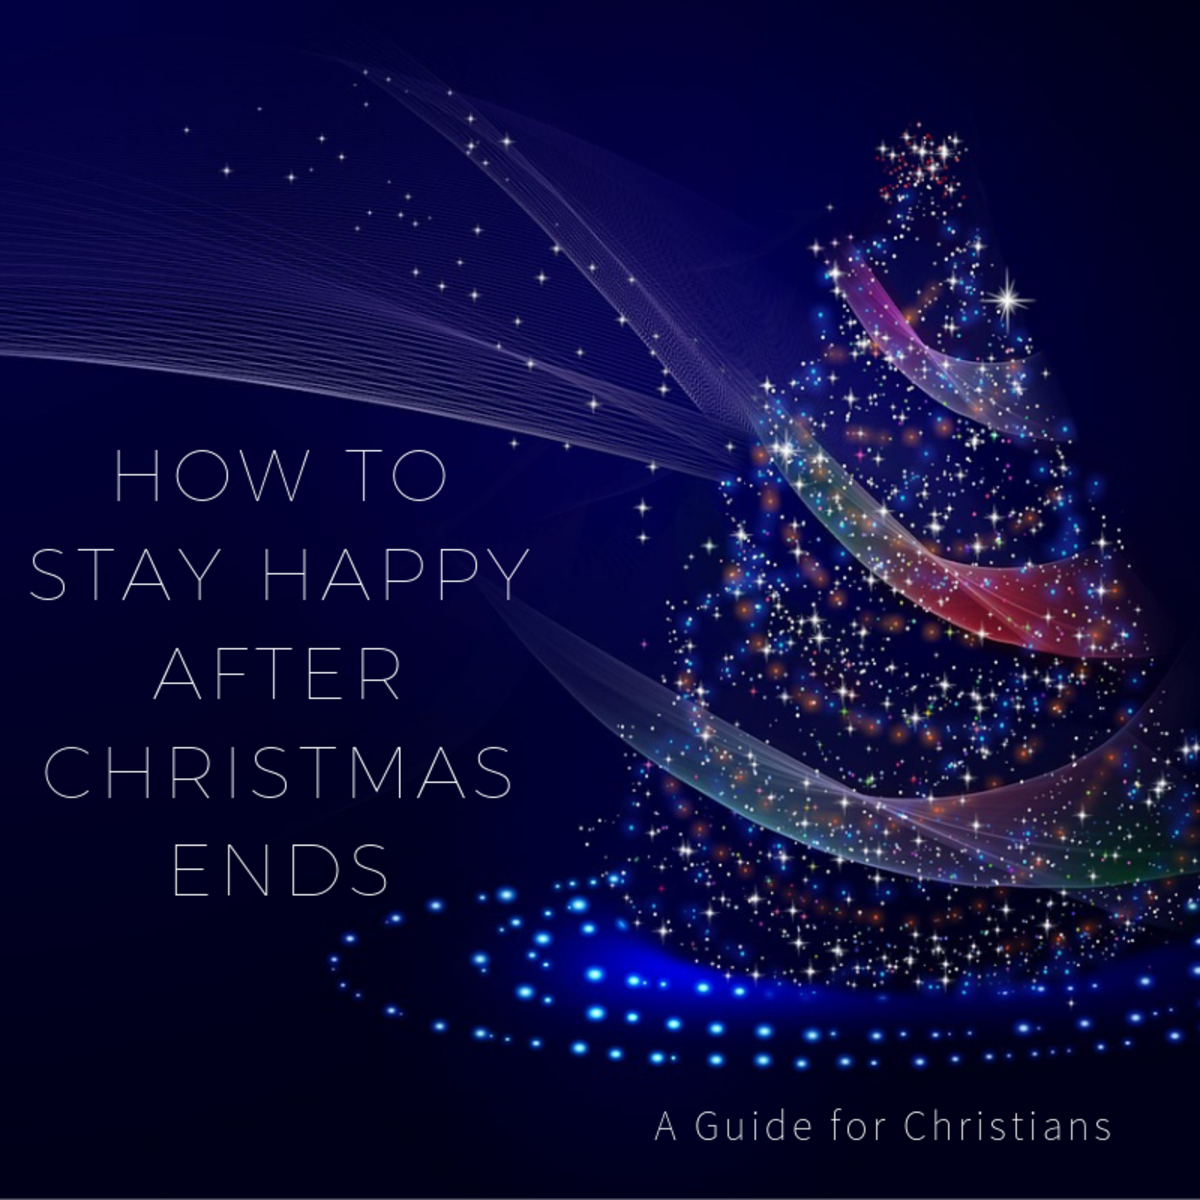 3 Christian Ways To Stay Happy After Christmas